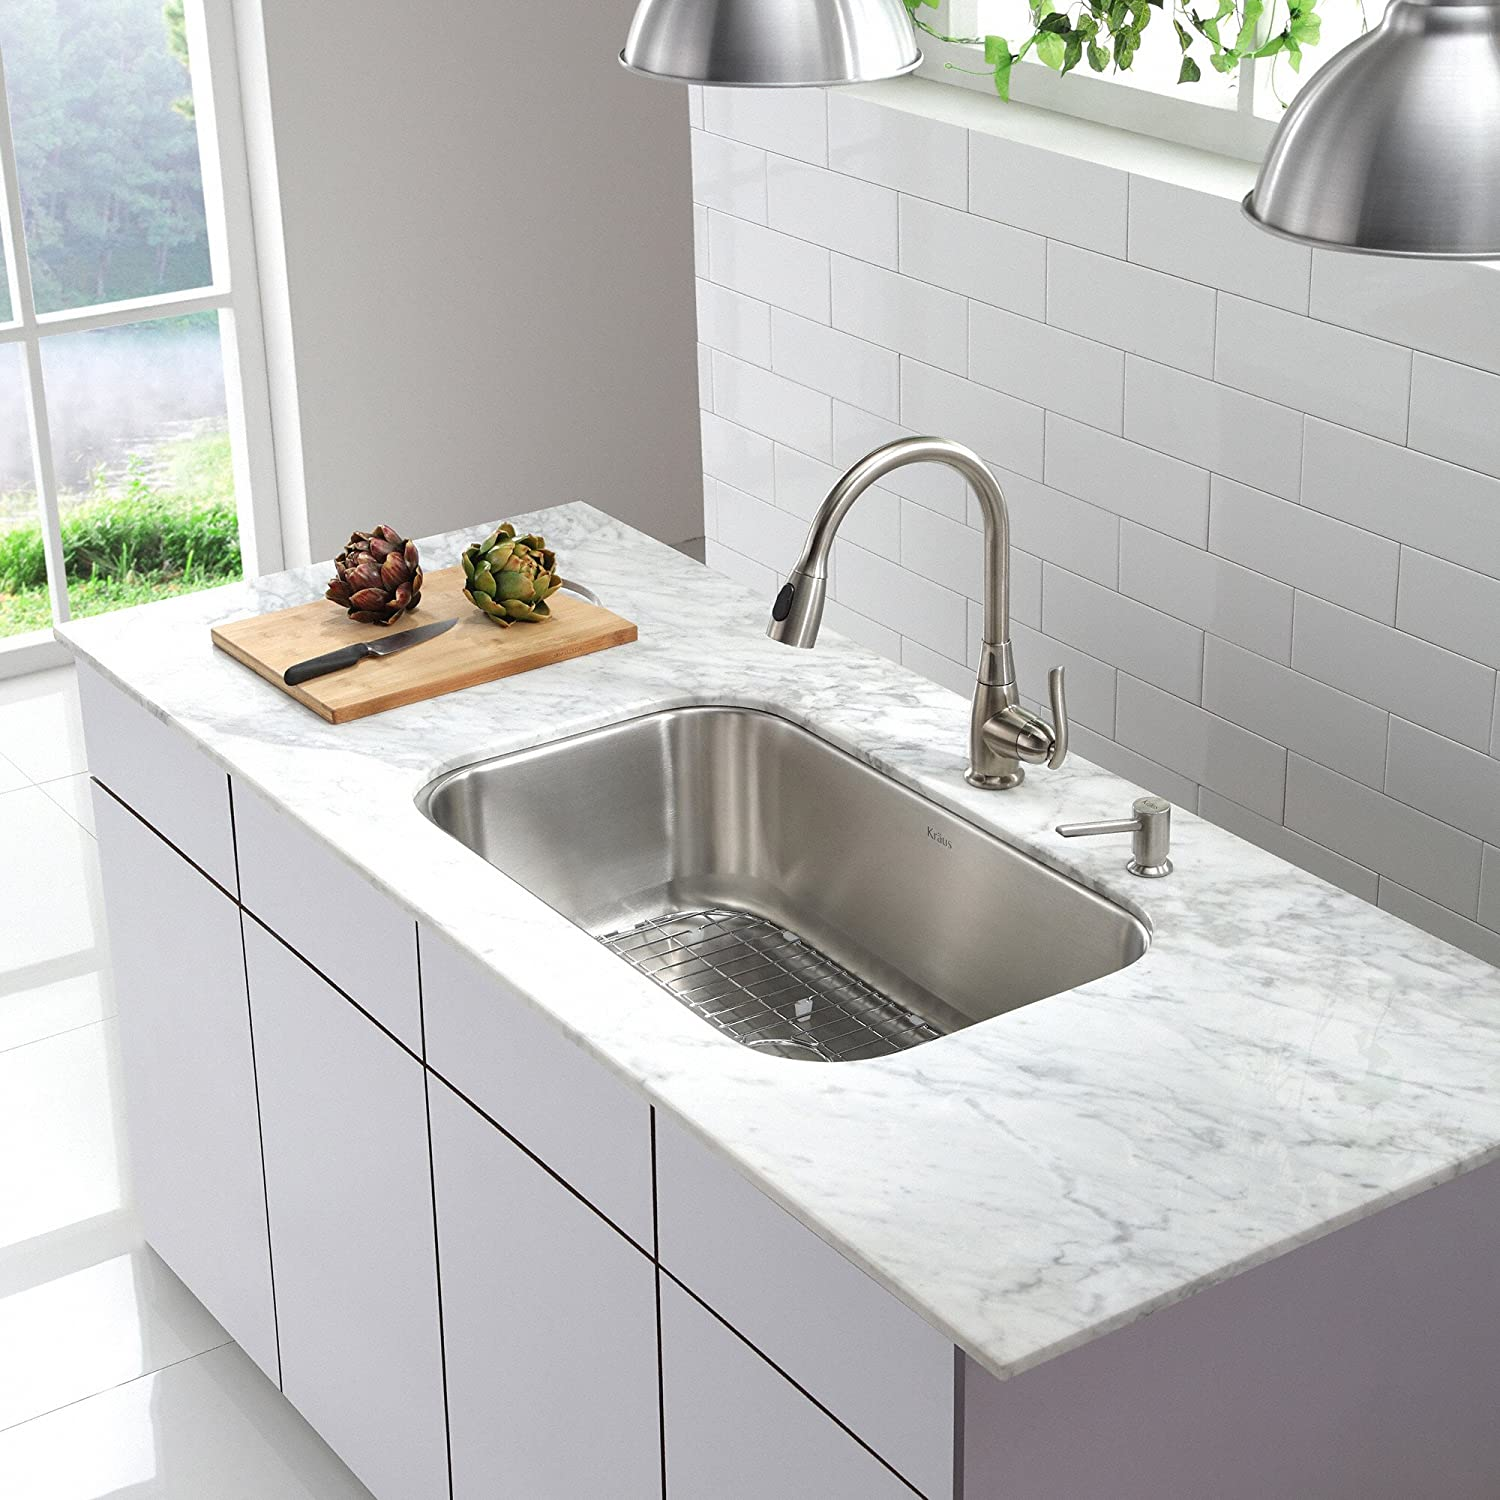 stainless steel artinox sinks sink en dama kitchen